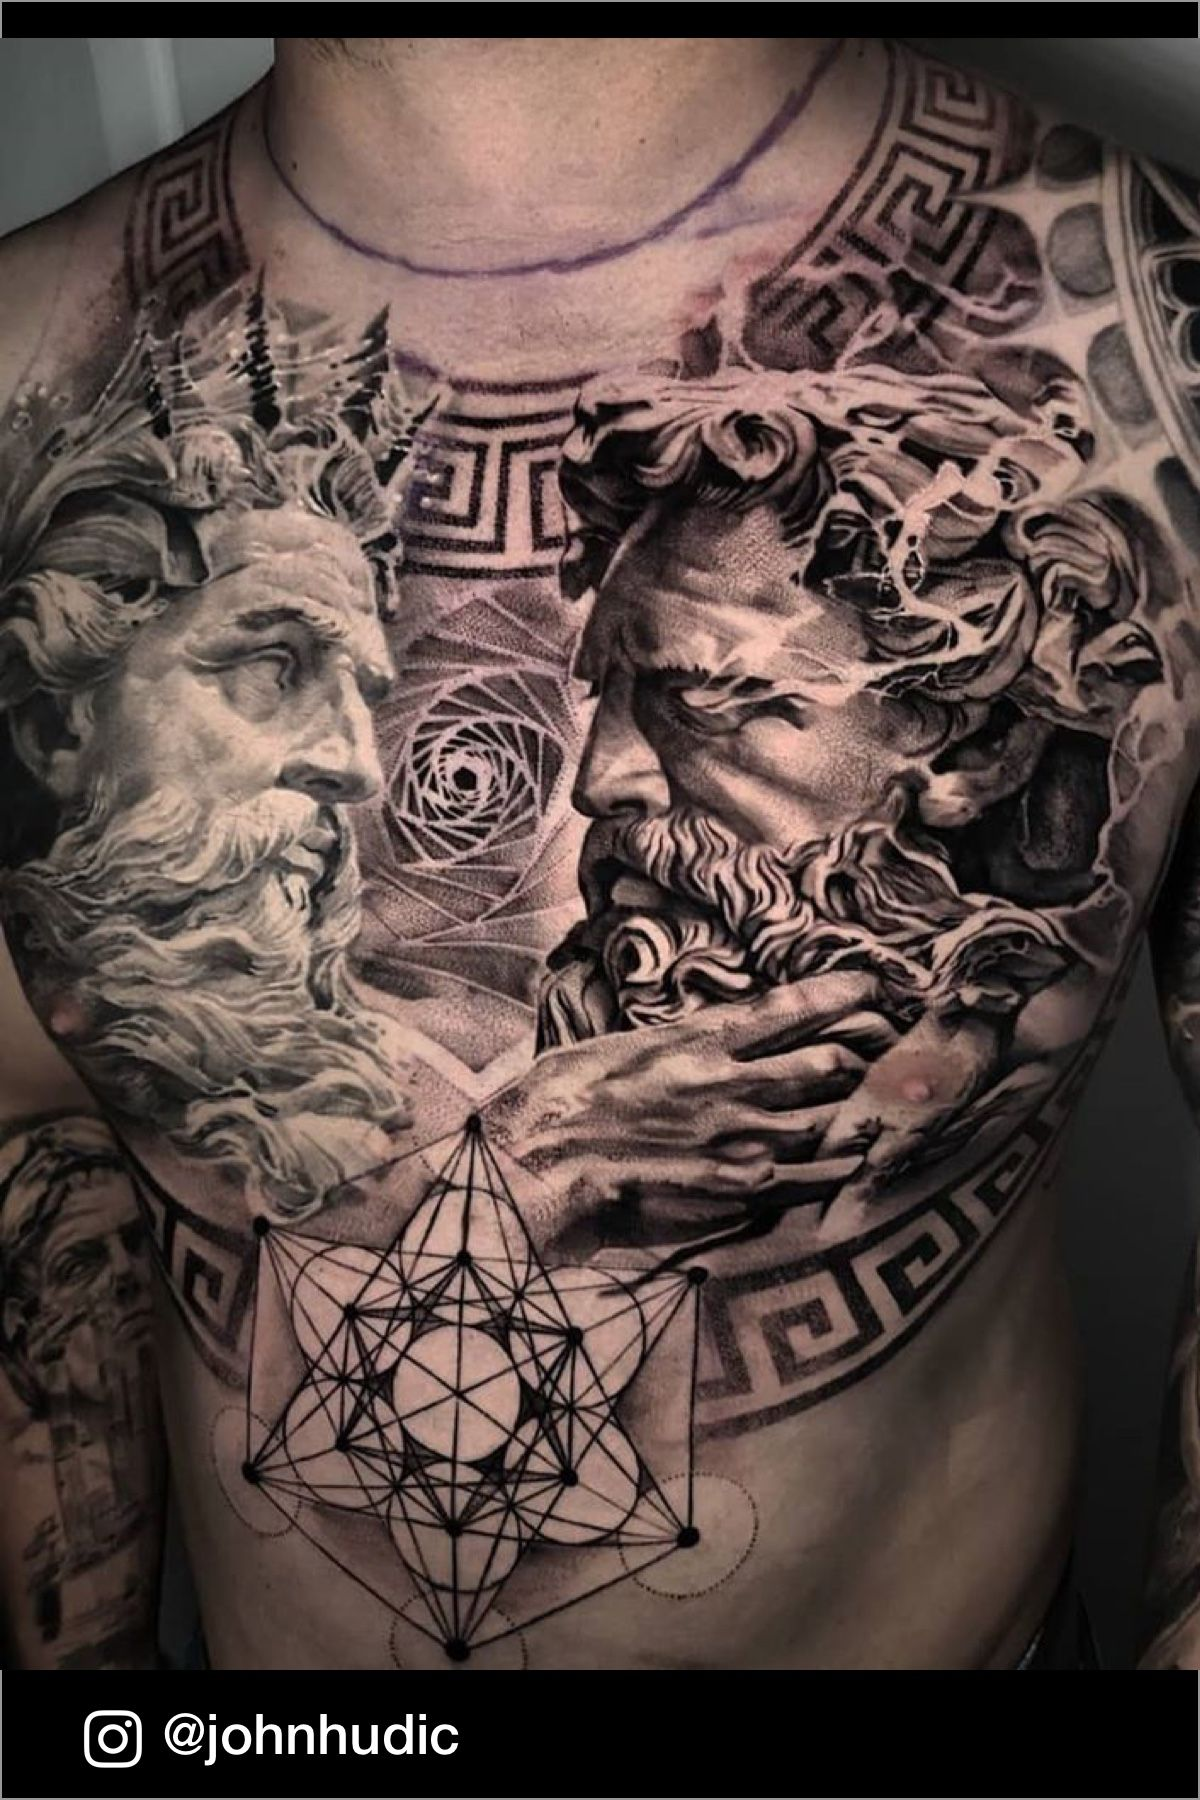 Realistic Black And Grey Zeus Chest Tattoo Made By John Hudic Tattoo Artist Based In Nice France In 2020 Zeus Tattoo Chest Tattoo Poseidon Tattoo